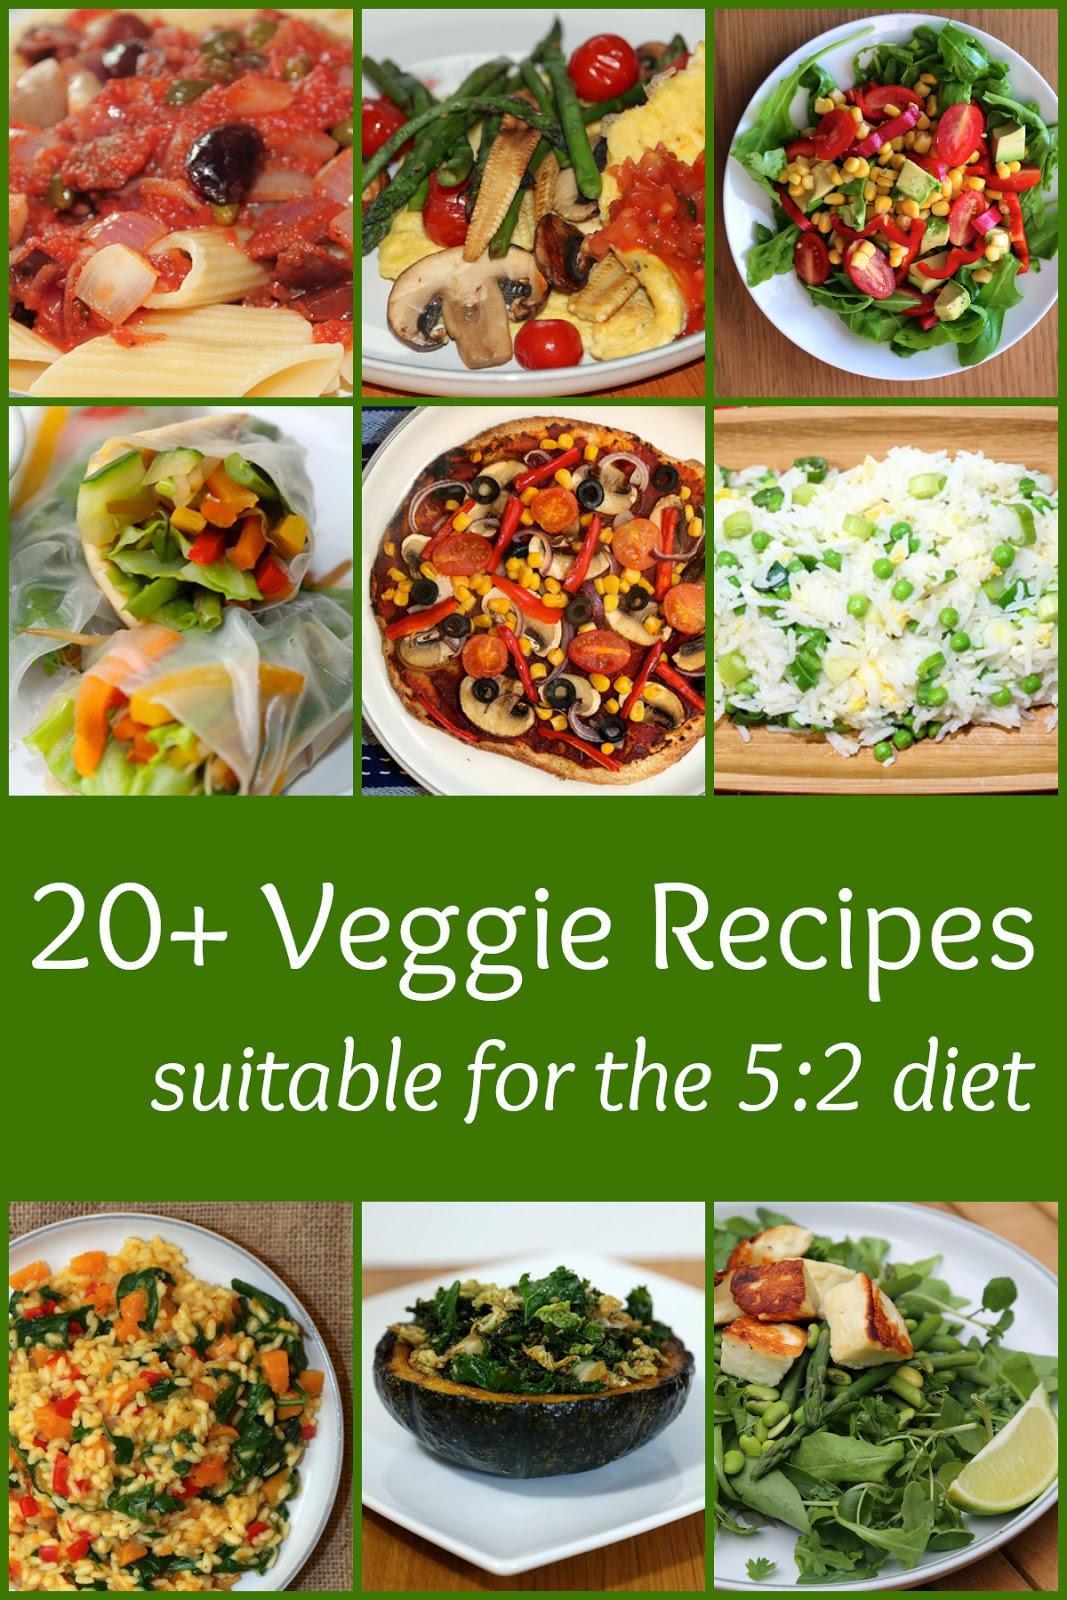 Rachel cotterill vegetarian recipes for intermittent fasting diets vegetarian recipes for intermittent fasting diets under 300 calories forumfinder Images